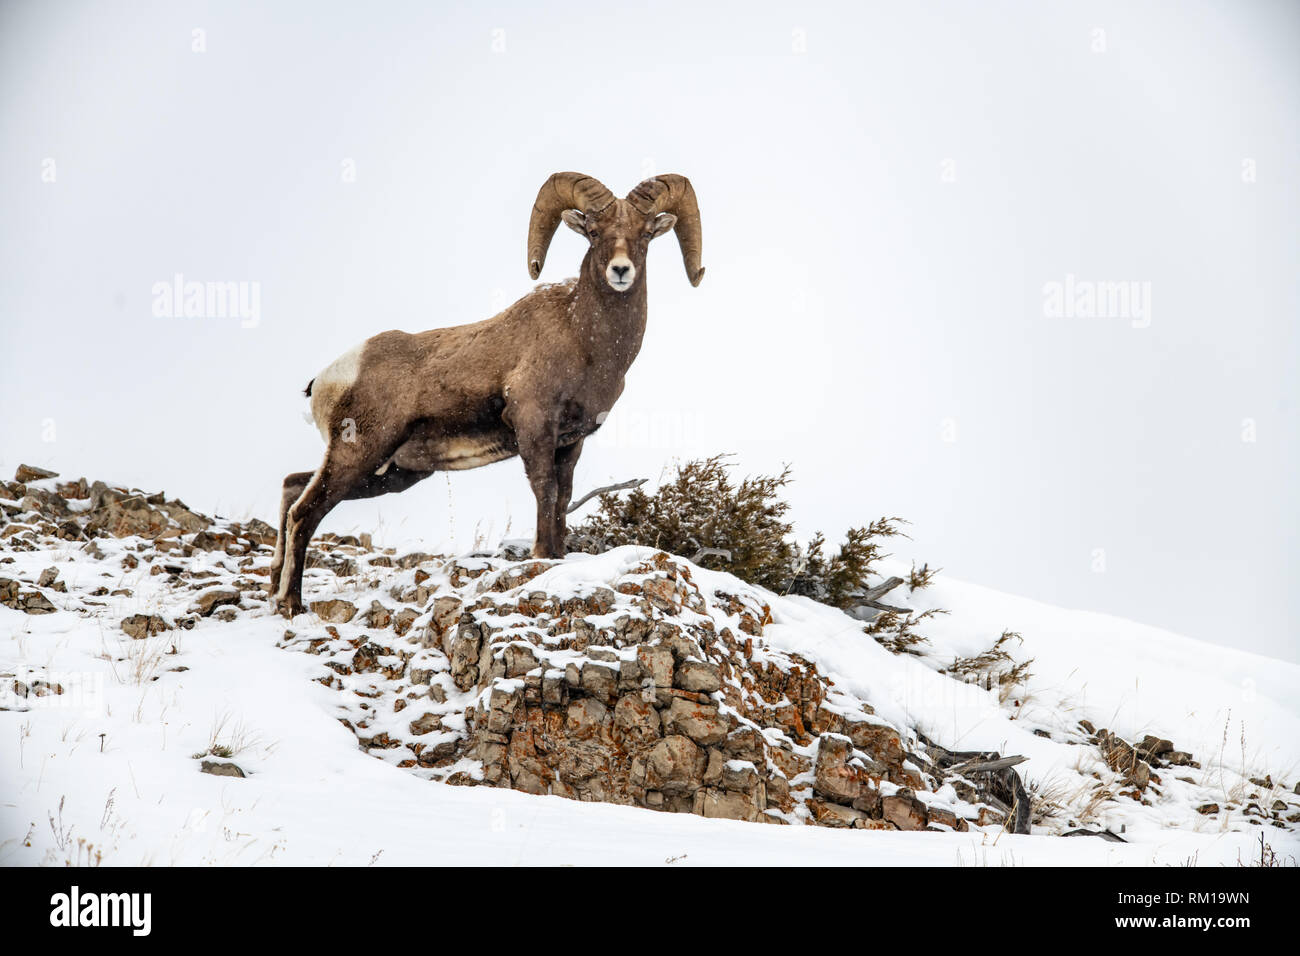 Male bighorn sheep (Ovis canadensis) in Yellowstone National Park in Wyoming, USA Stock Photo